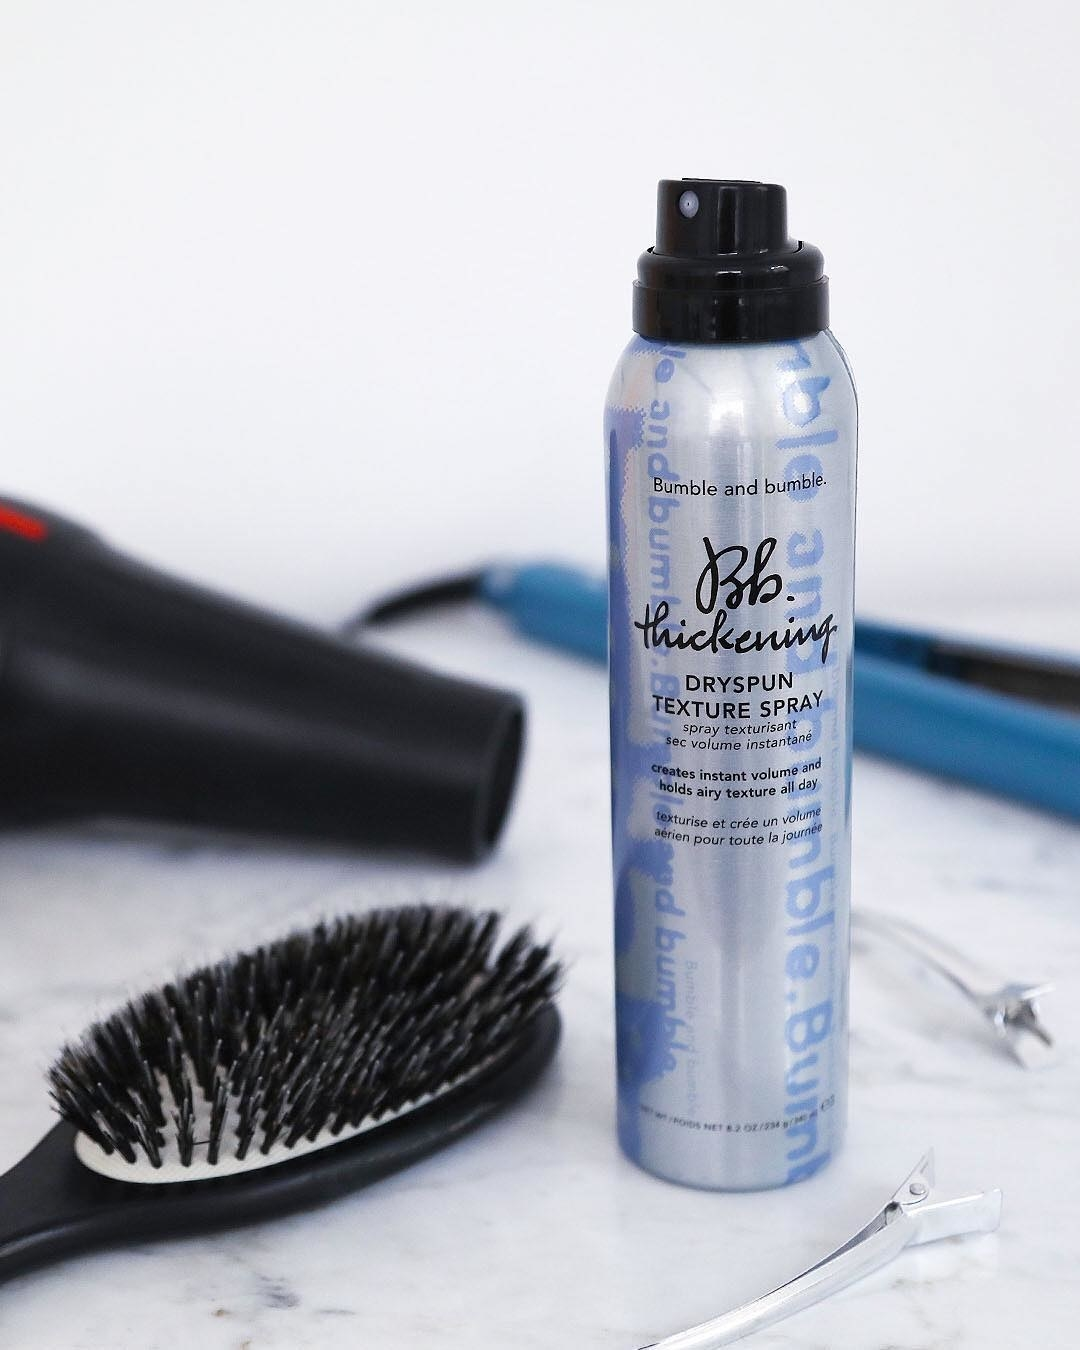 A bottle of the product beside a hair brush